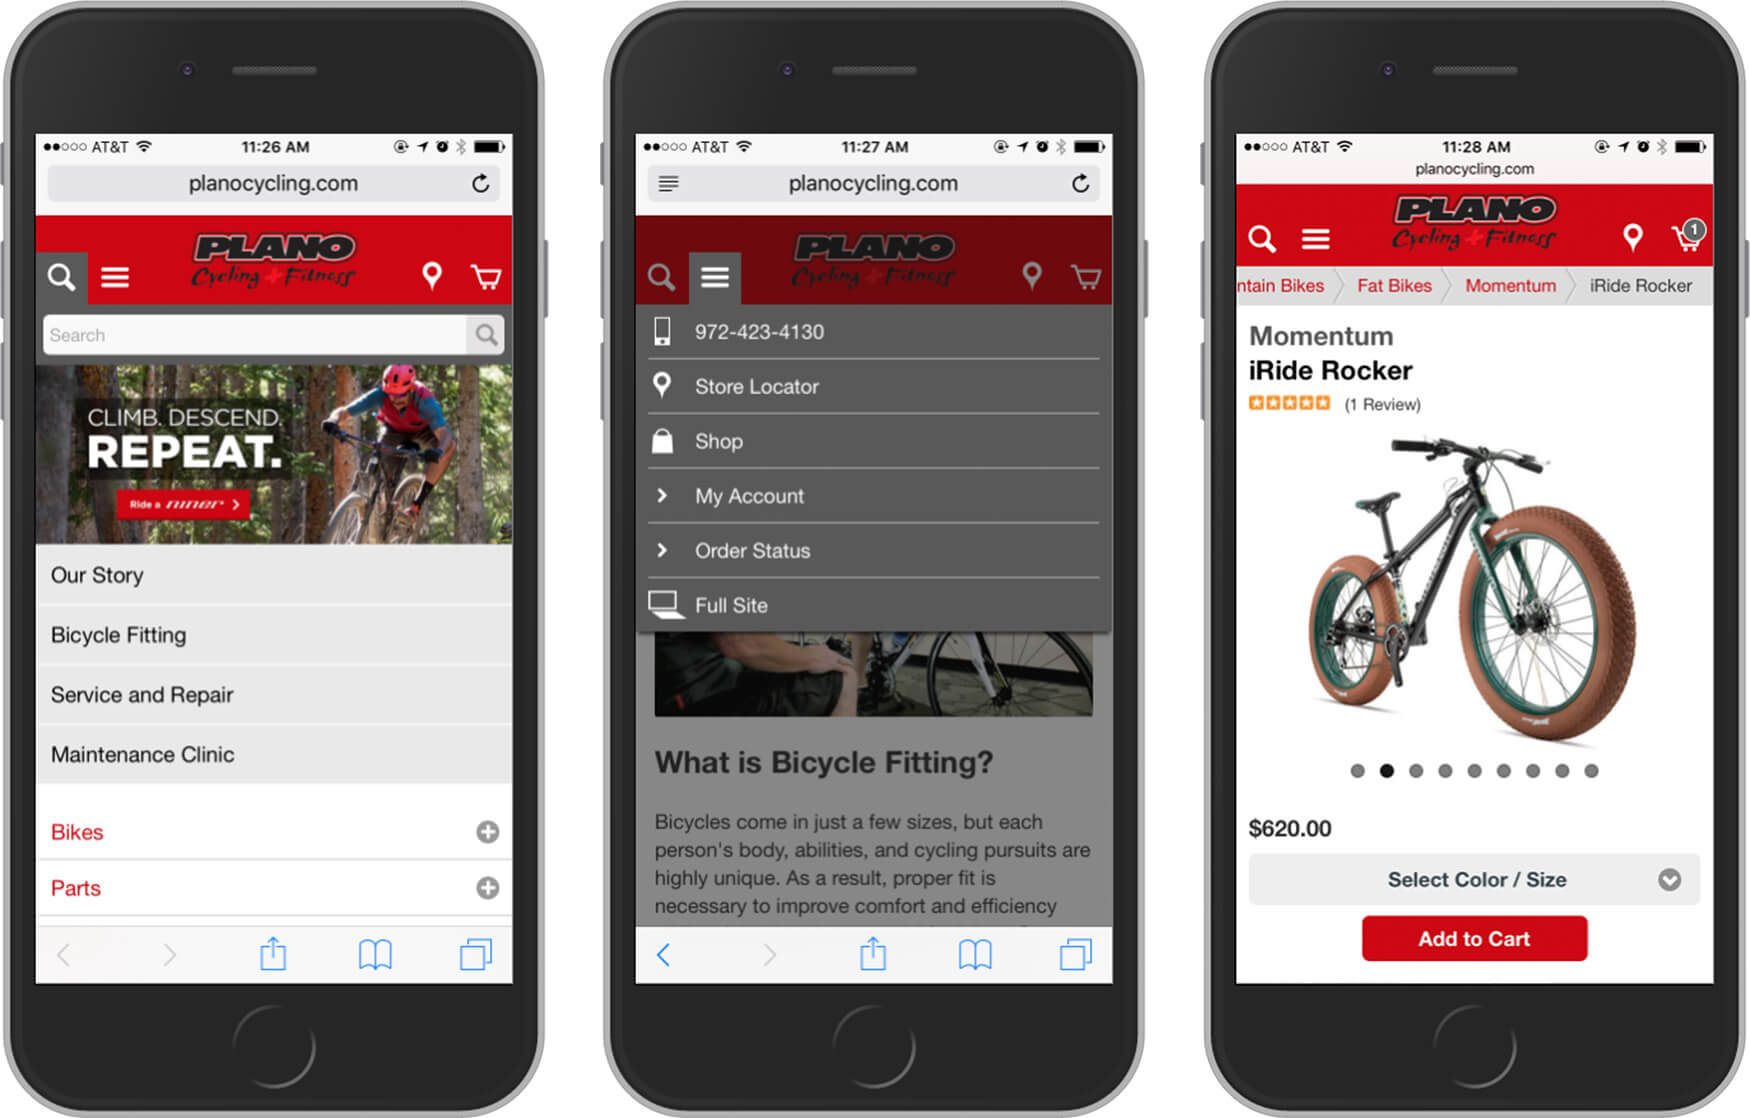 Screenshots of Plano cycling mobile website